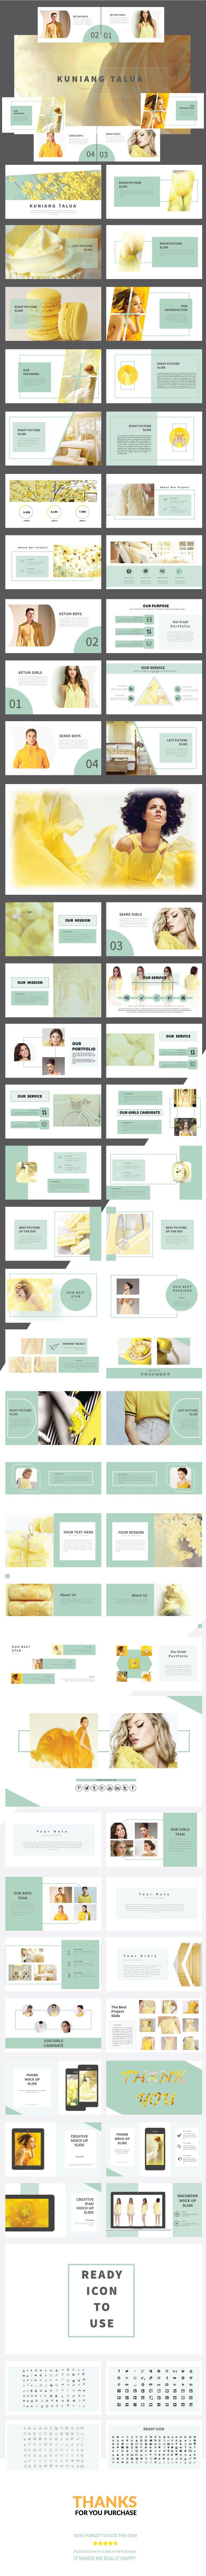 Kuniang Talua Powerpoint Template - PowerPoint Templates Presentation Templates